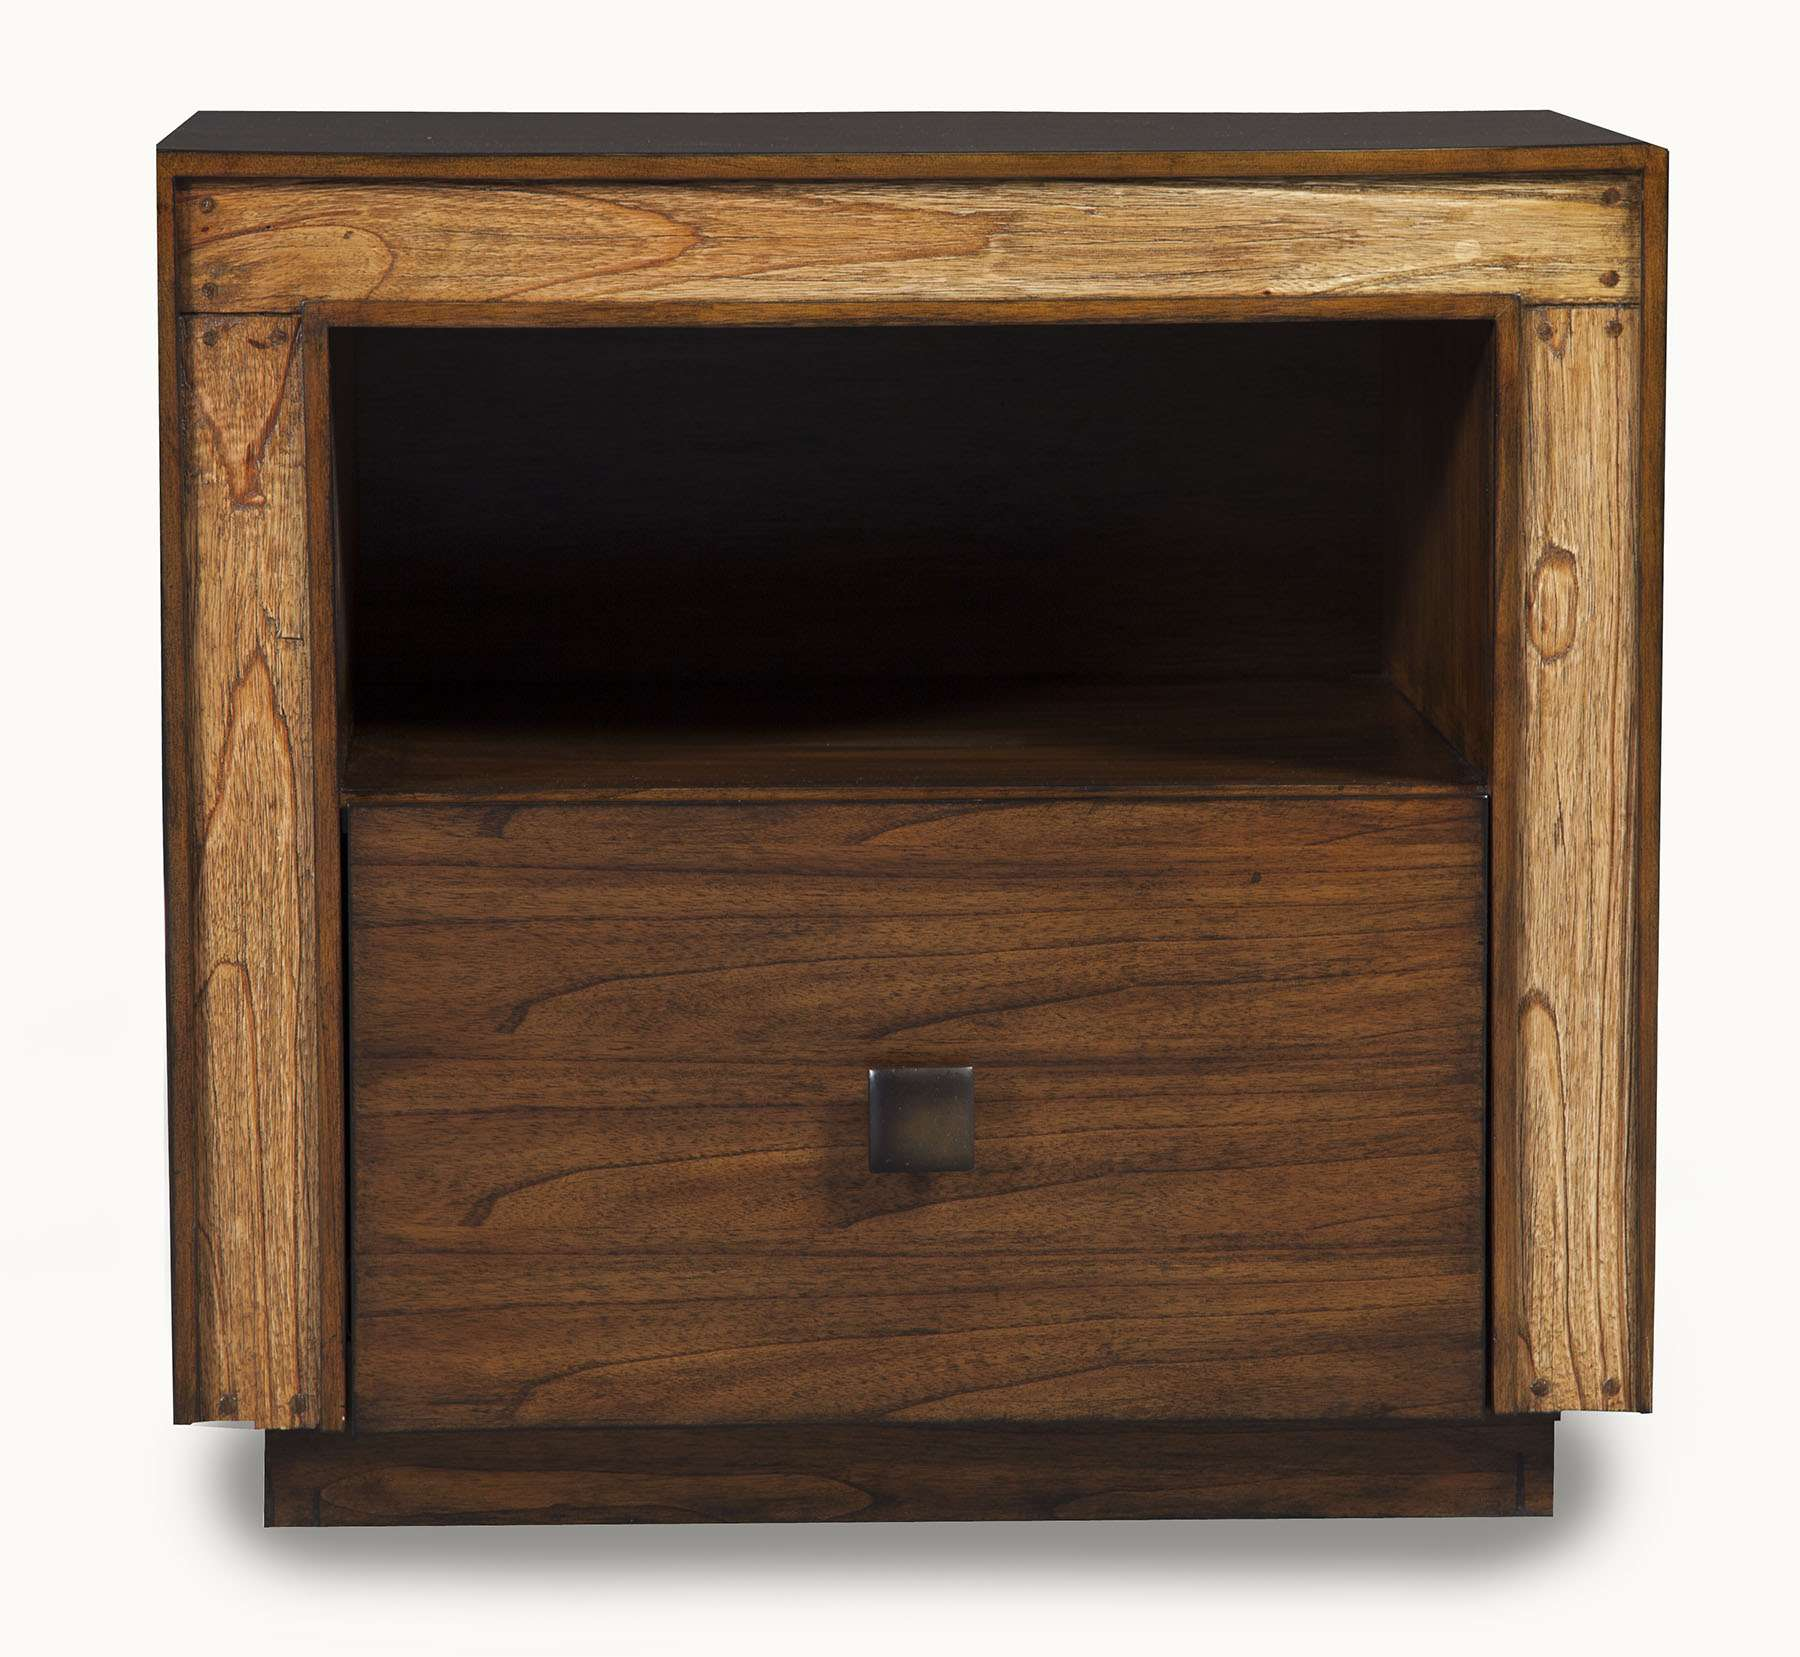 Jimbaran Bay Tobacco Nightstand with Drawer & Shelf